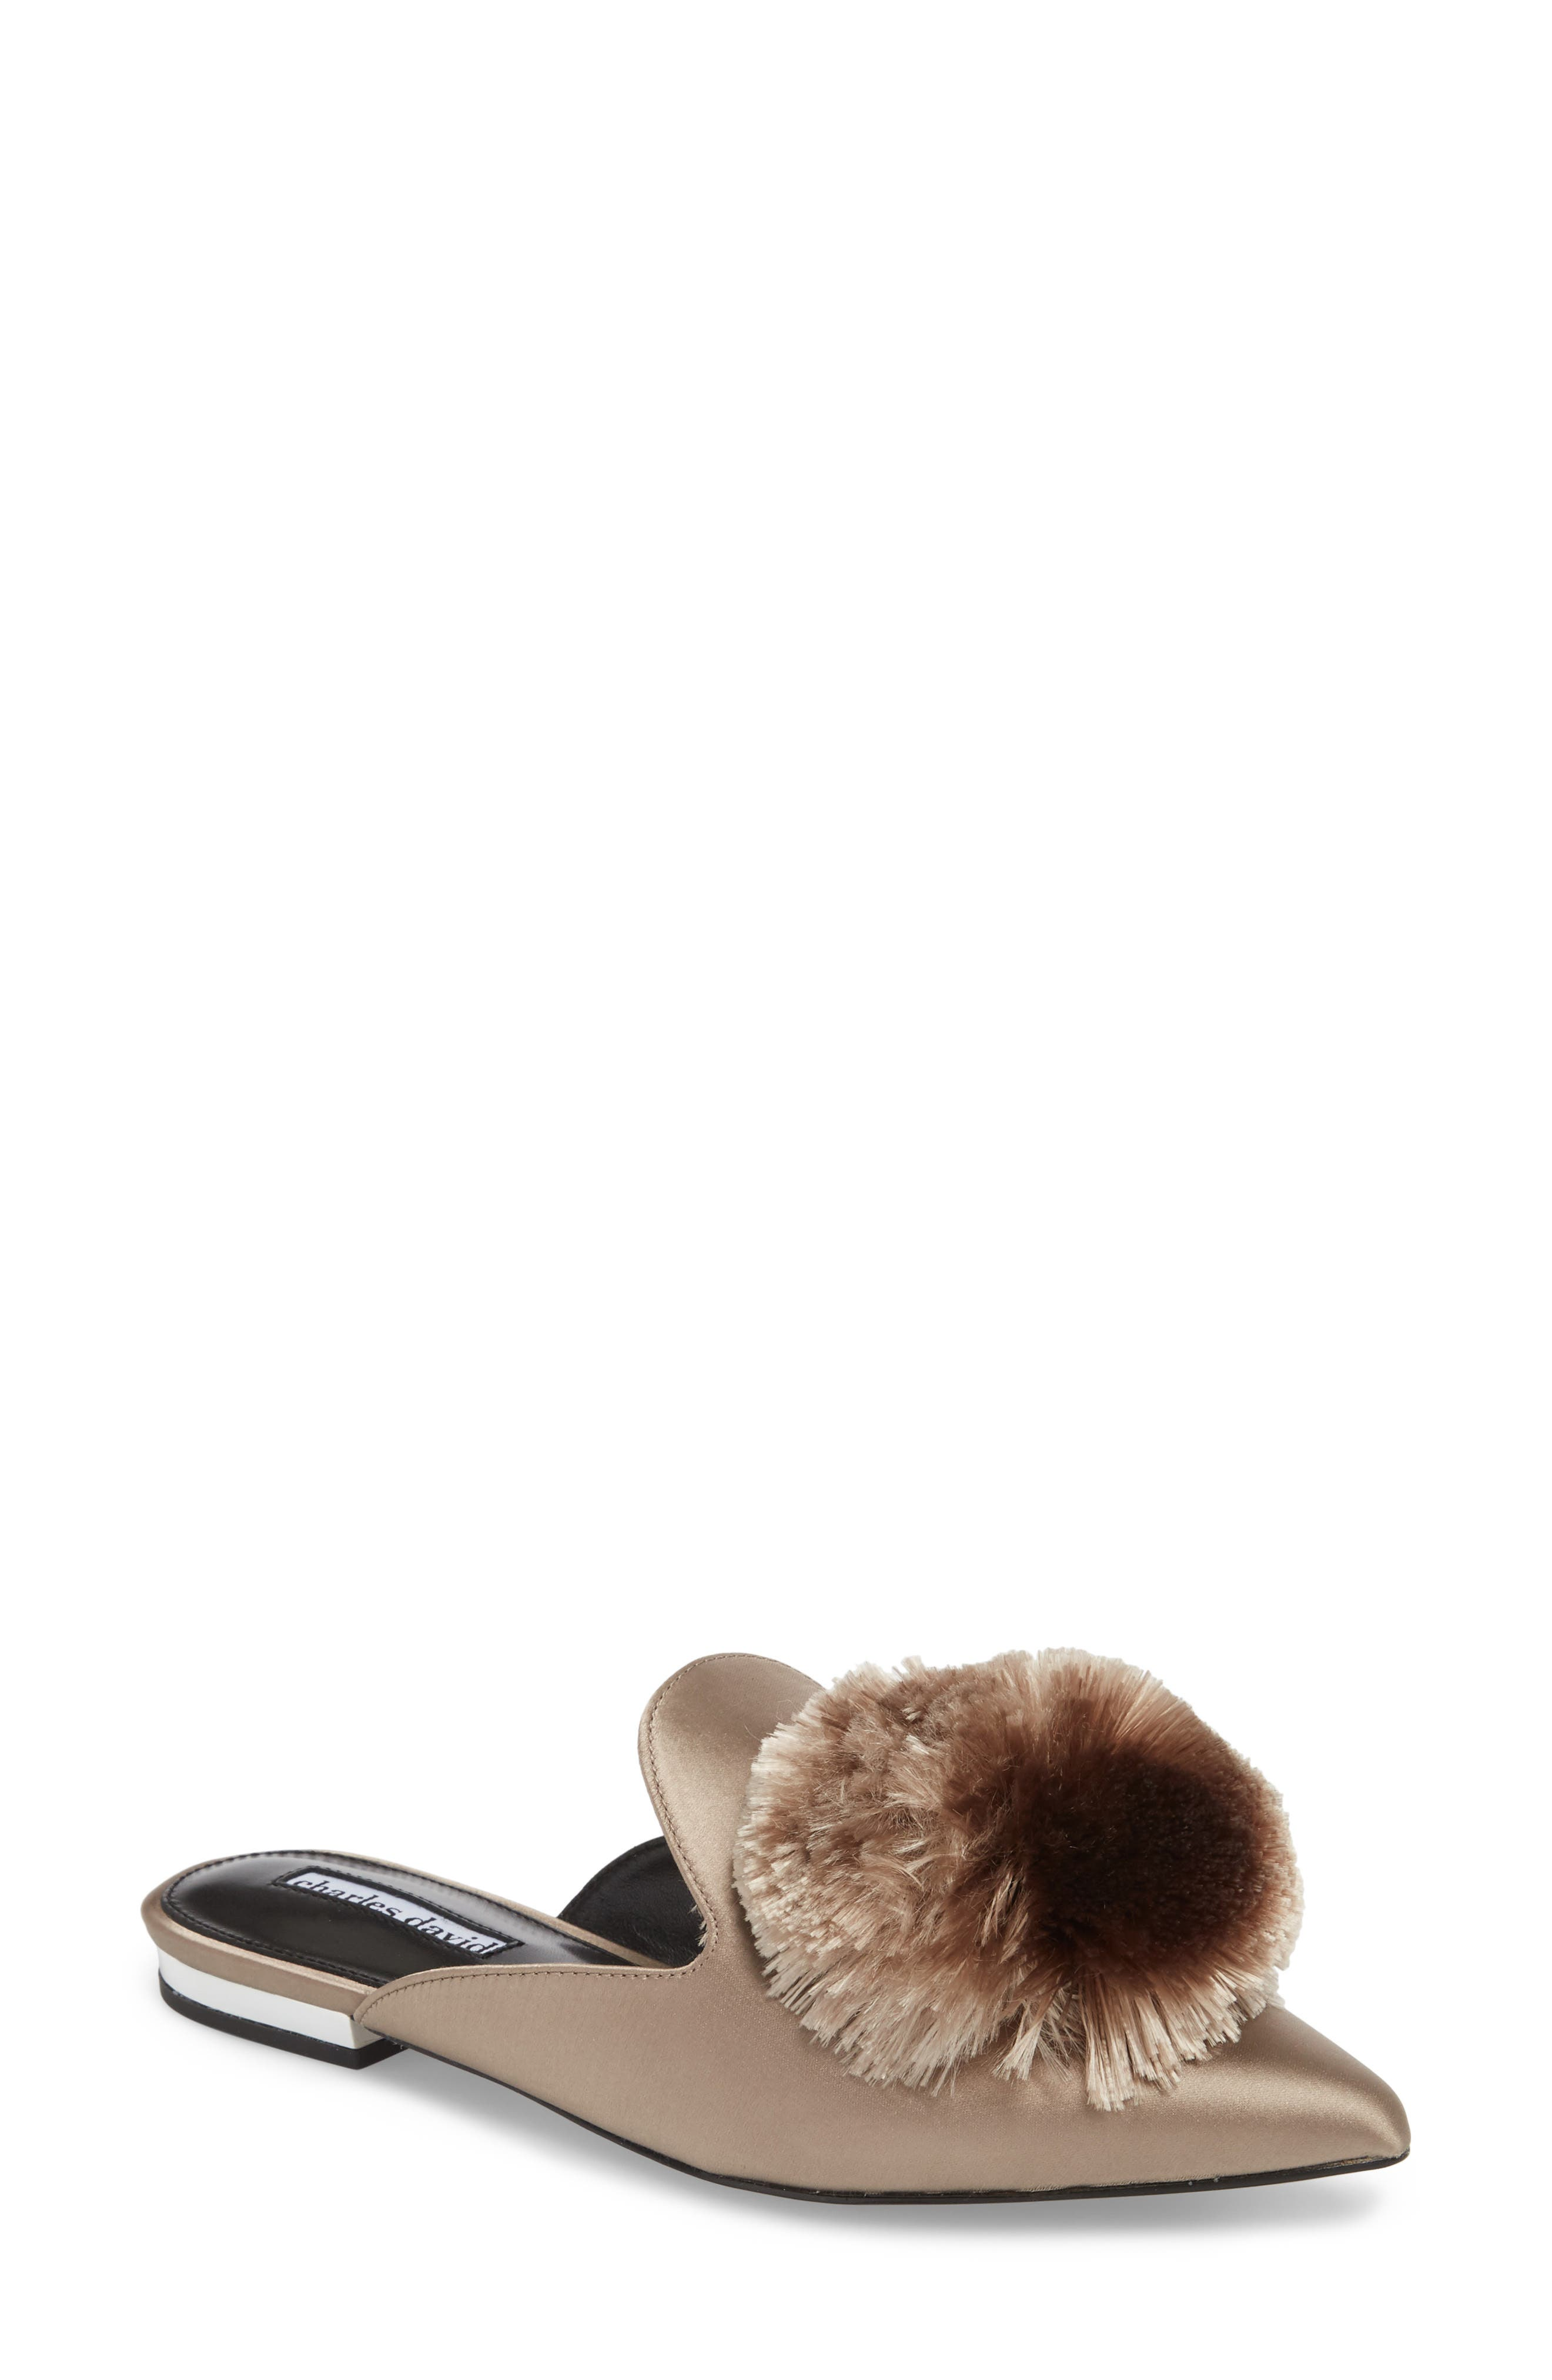 Wella Pompom Loafer Mule,                             Main thumbnail 1, color,                             TAUPE SATIN